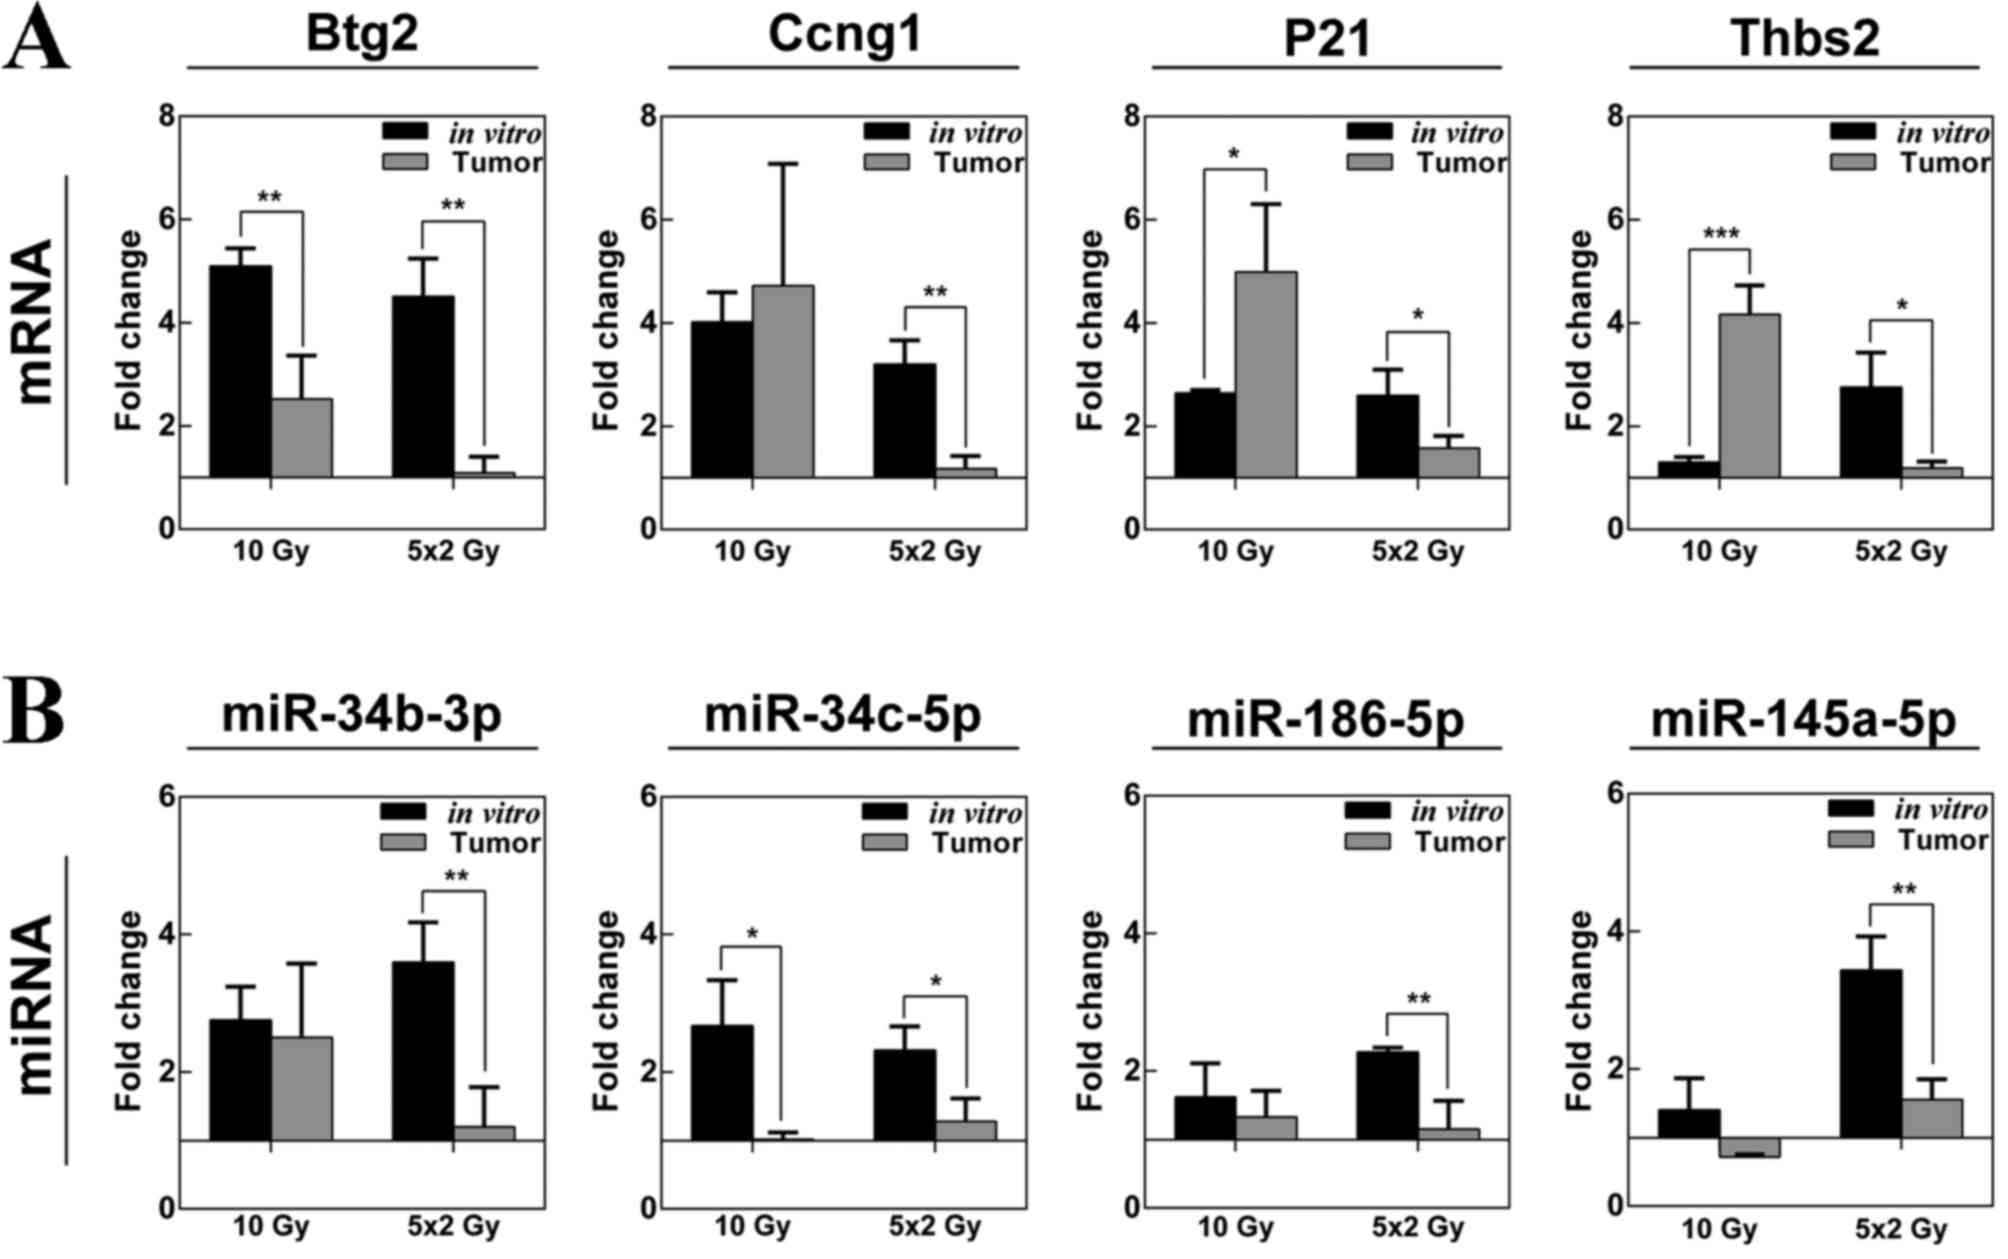 Gene And Mirna Expression Profiles Of Mouse Lewis Lung